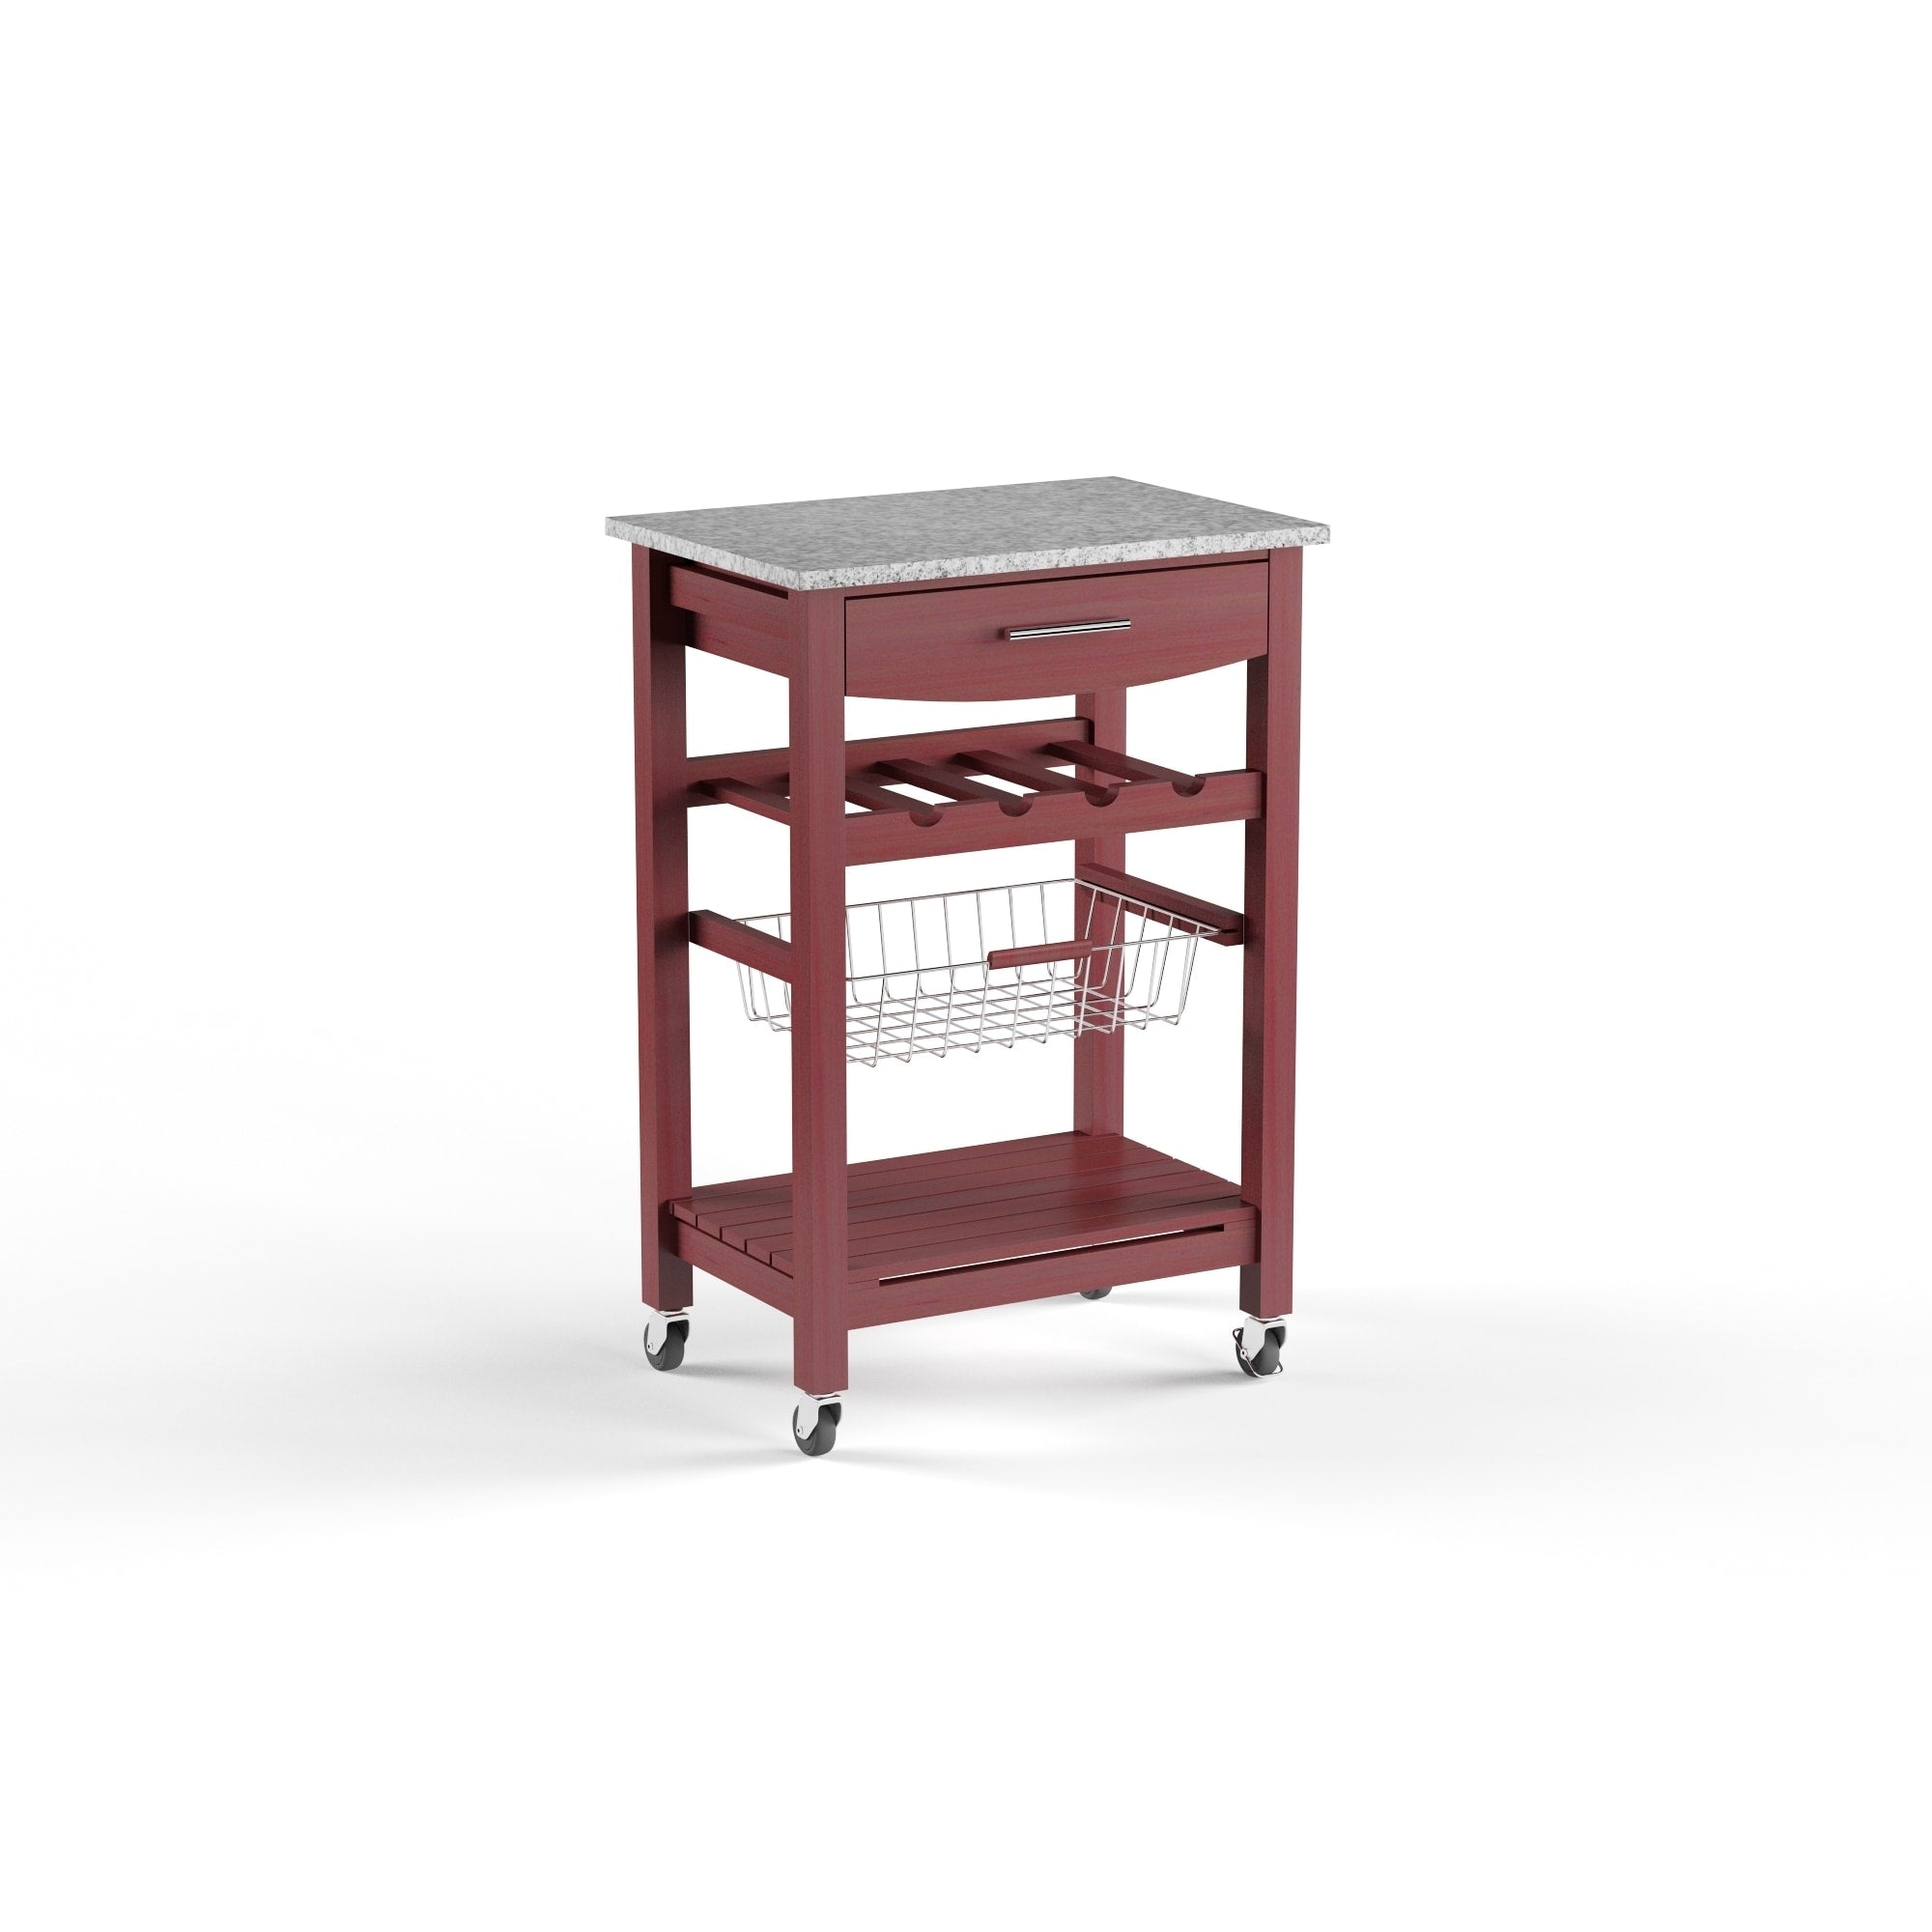 Wenge and Granite Top Mobile Kitchen Island with Wine Rack